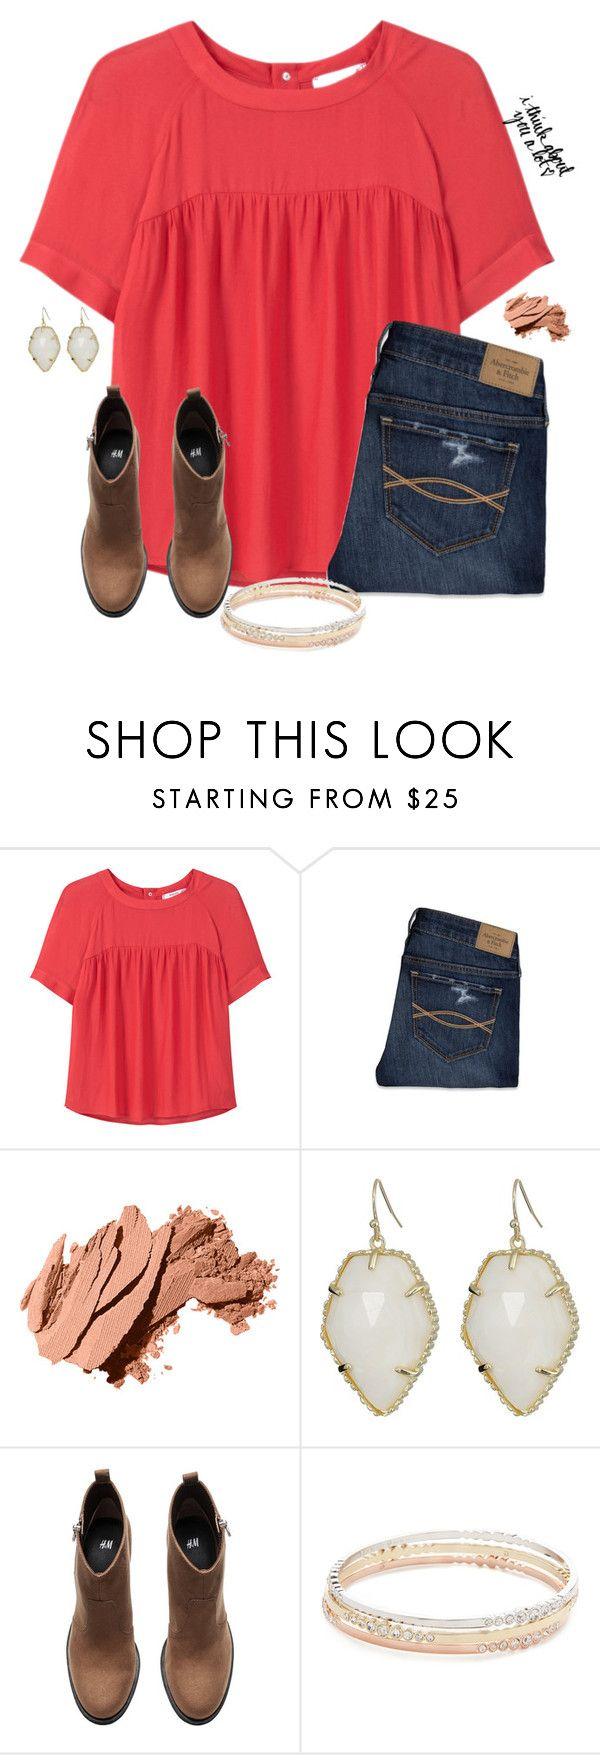 """When you hear Taylor and Calvin are talking again"" by christyaphan ❤ liked on Polyvore featuring MANGO, Abercrombie & Fitch, Bobbi Brown Cosmetics, Kendra Scott, H&M and Kate Spade"